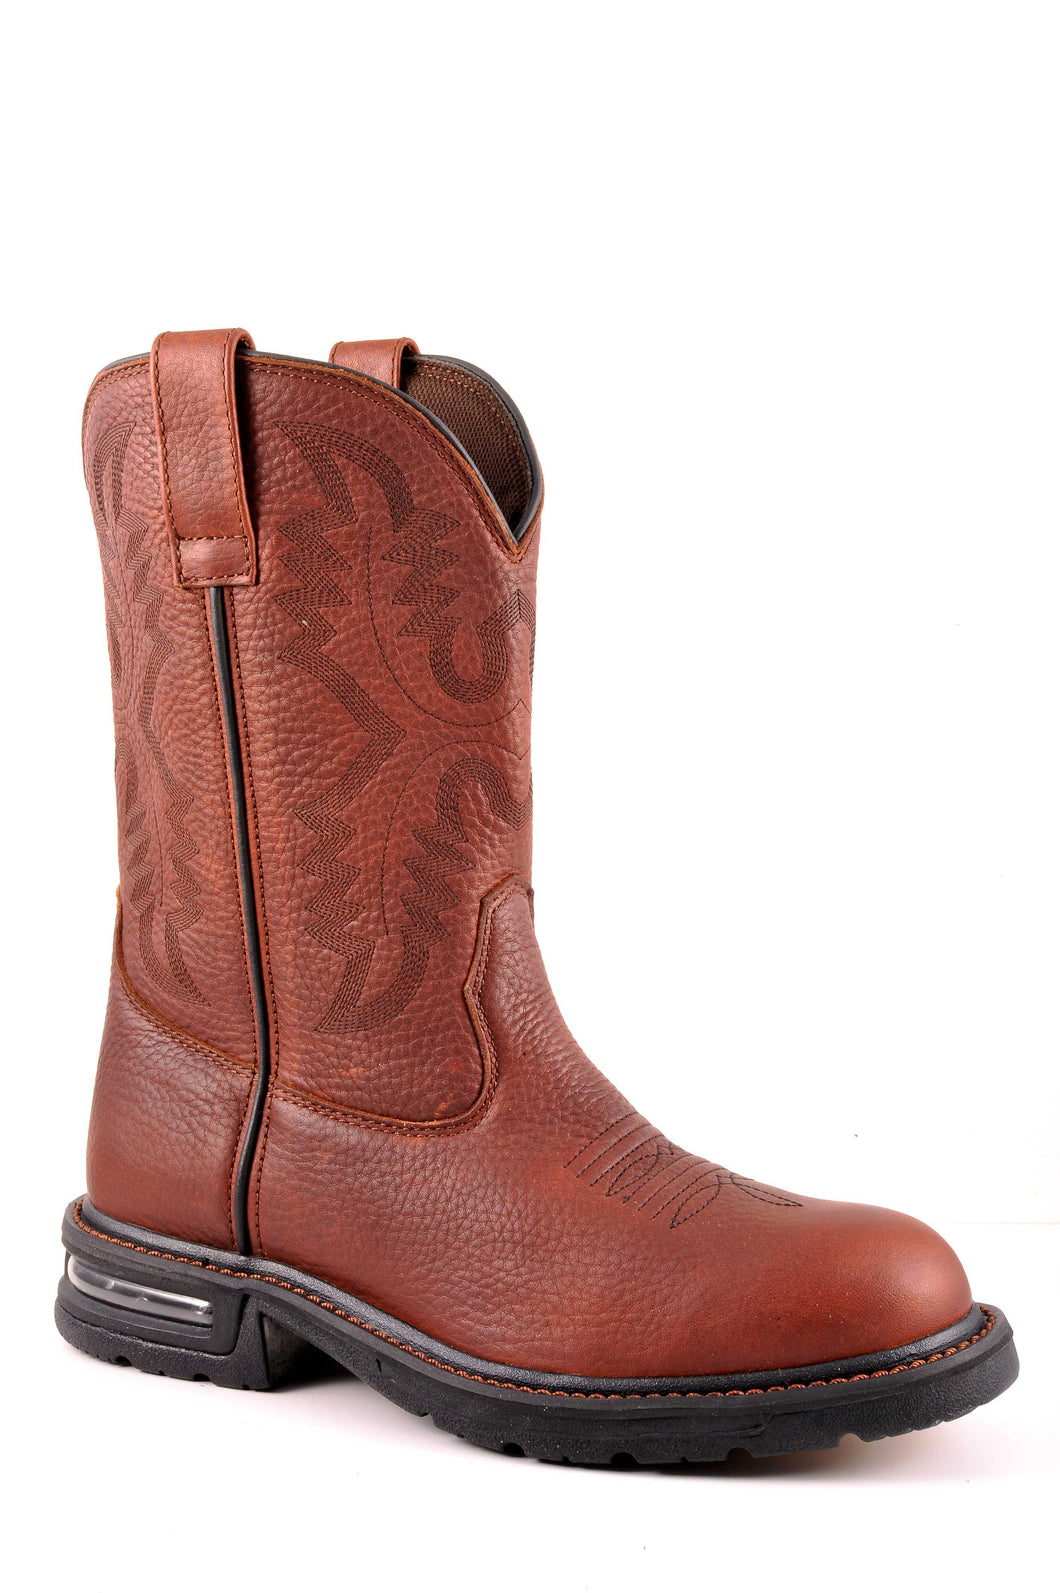 Worker Boot Mens Boots Roper Pull On Workboot